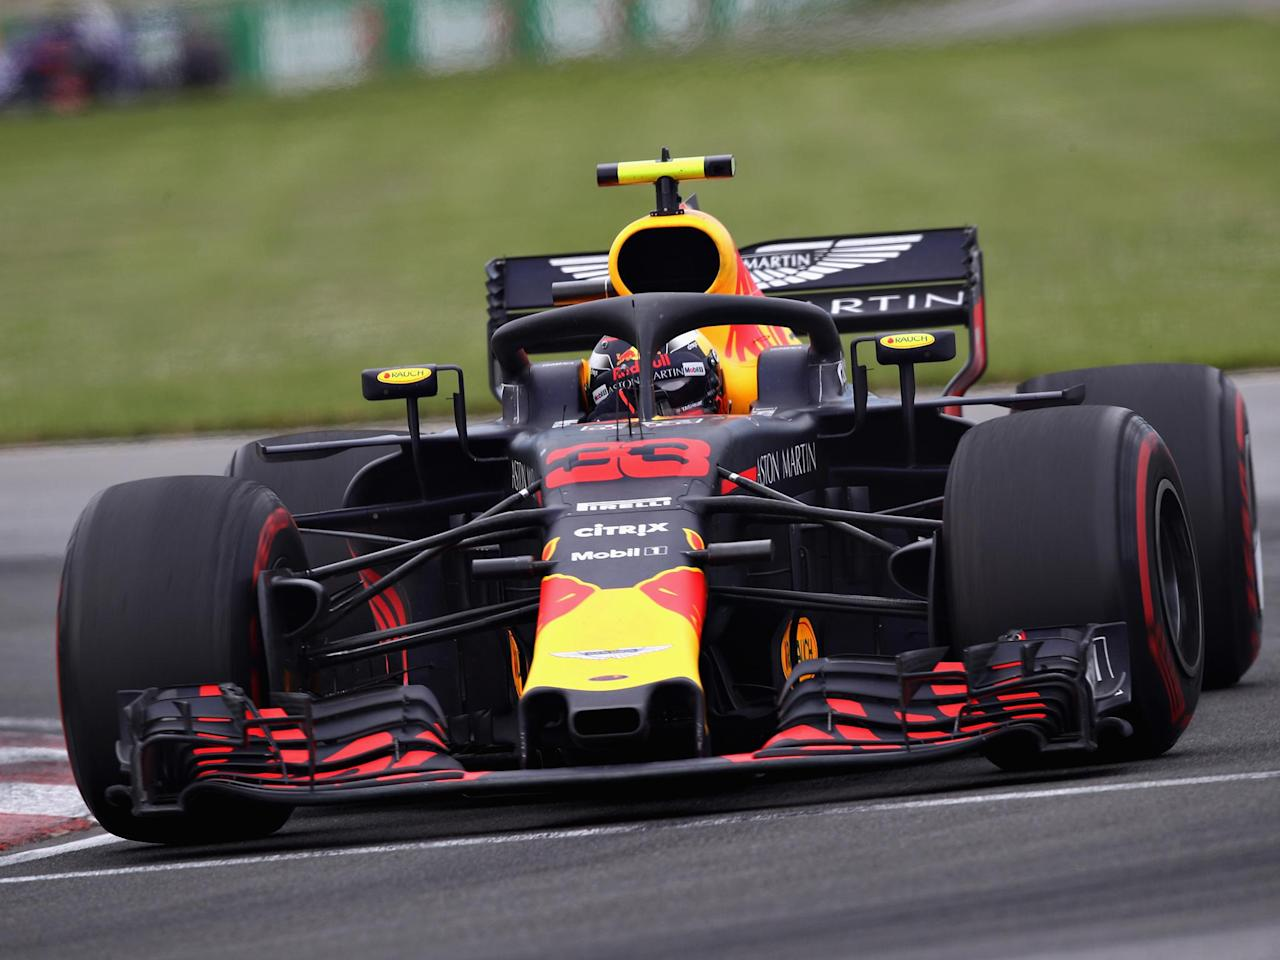 Red Bull agree to use Honda engines from 2019 F1 season to end 12-year deal with Renault